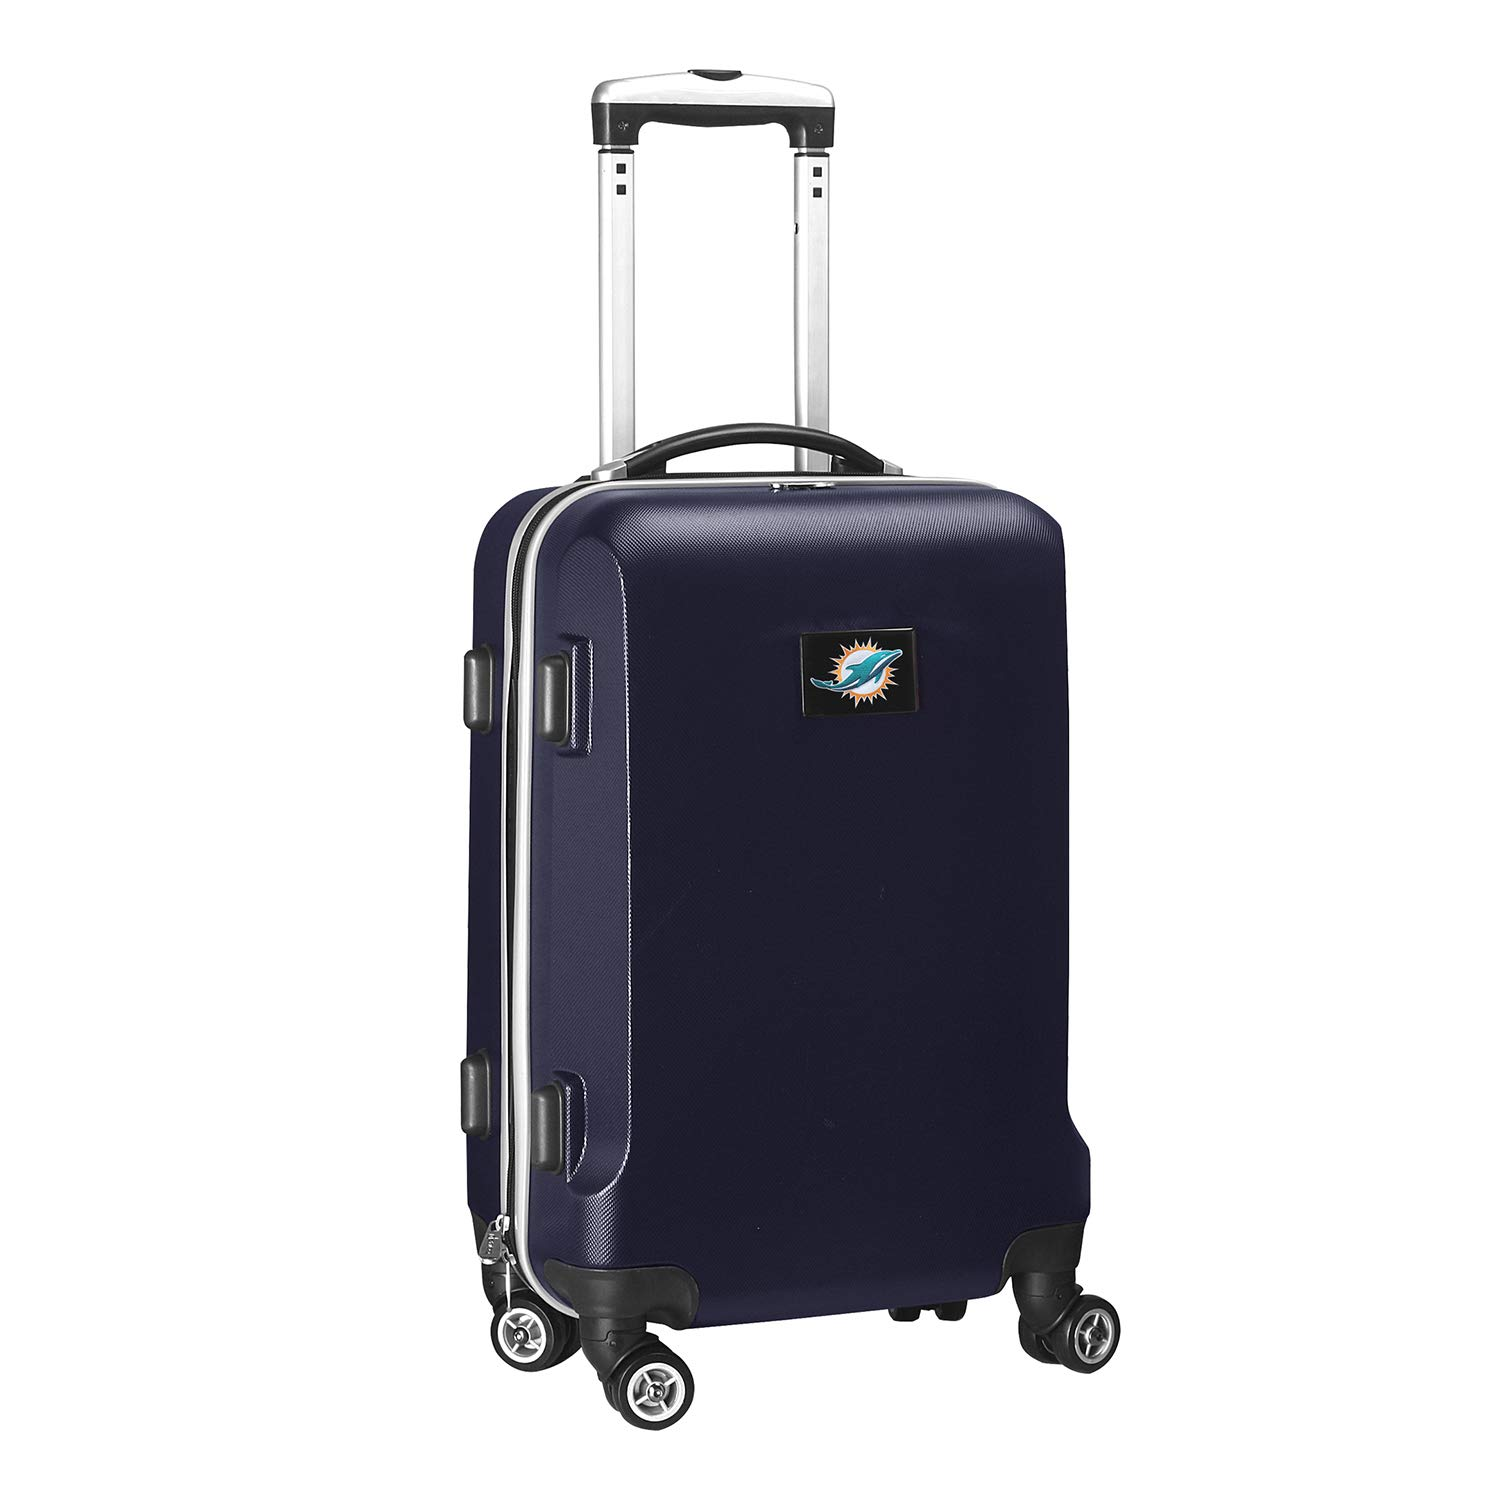 Denco NFL Miami Dolphins Carry-On Hardcase Luggage Spinner, Navy by Denco (Image #1)